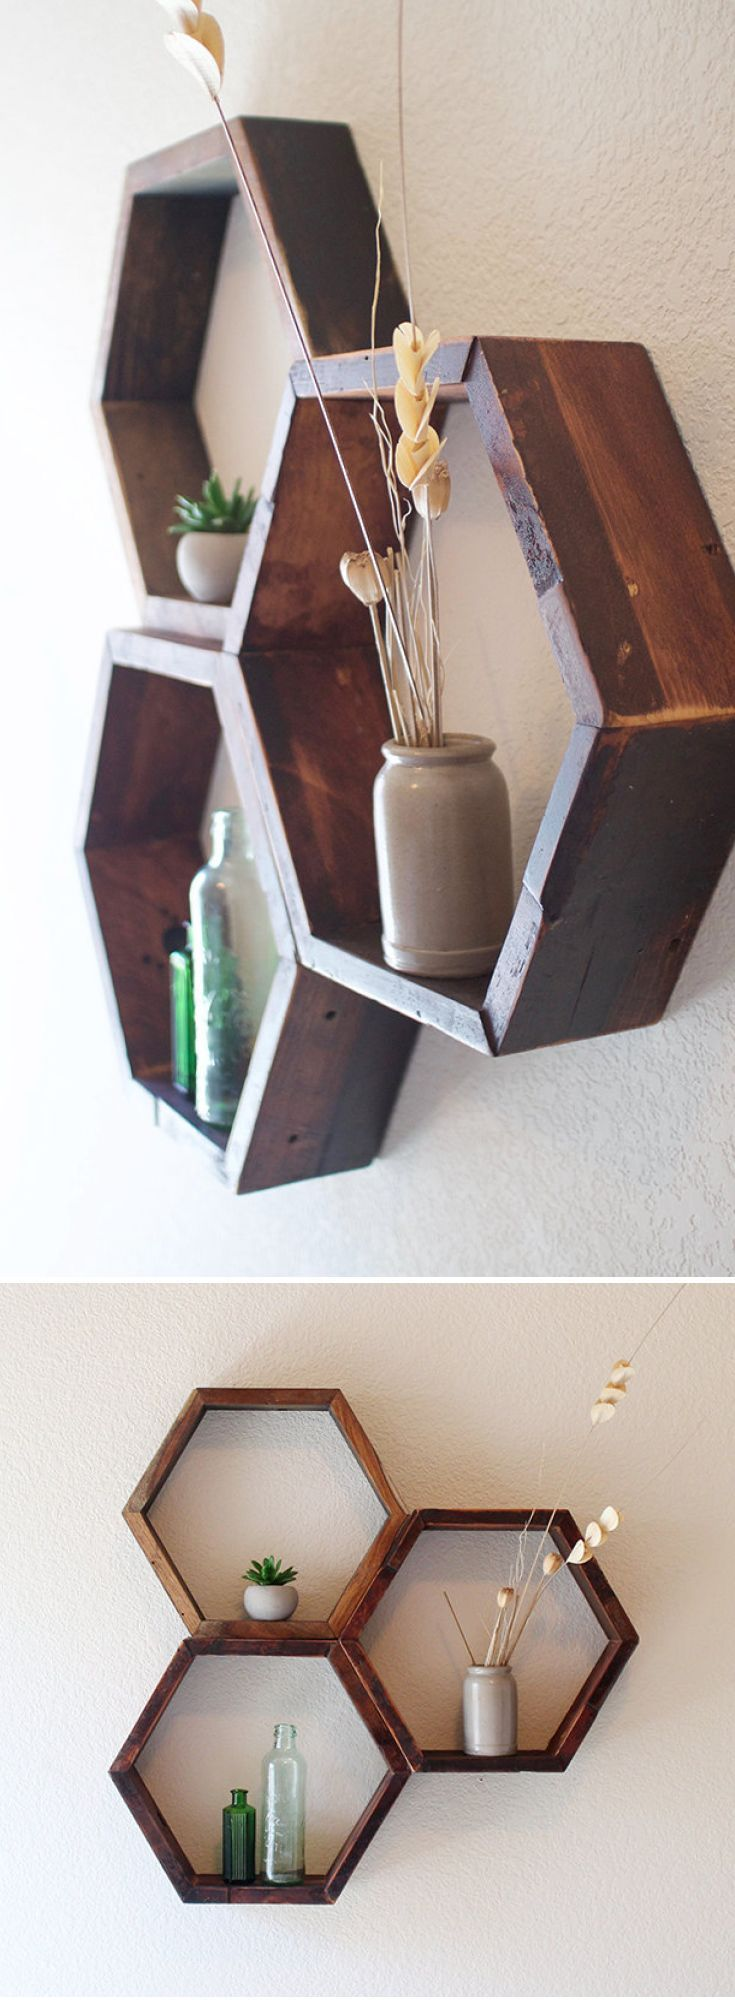 18 Outstanding Easy Diy Wood Craft Project Ideas For Home Decor